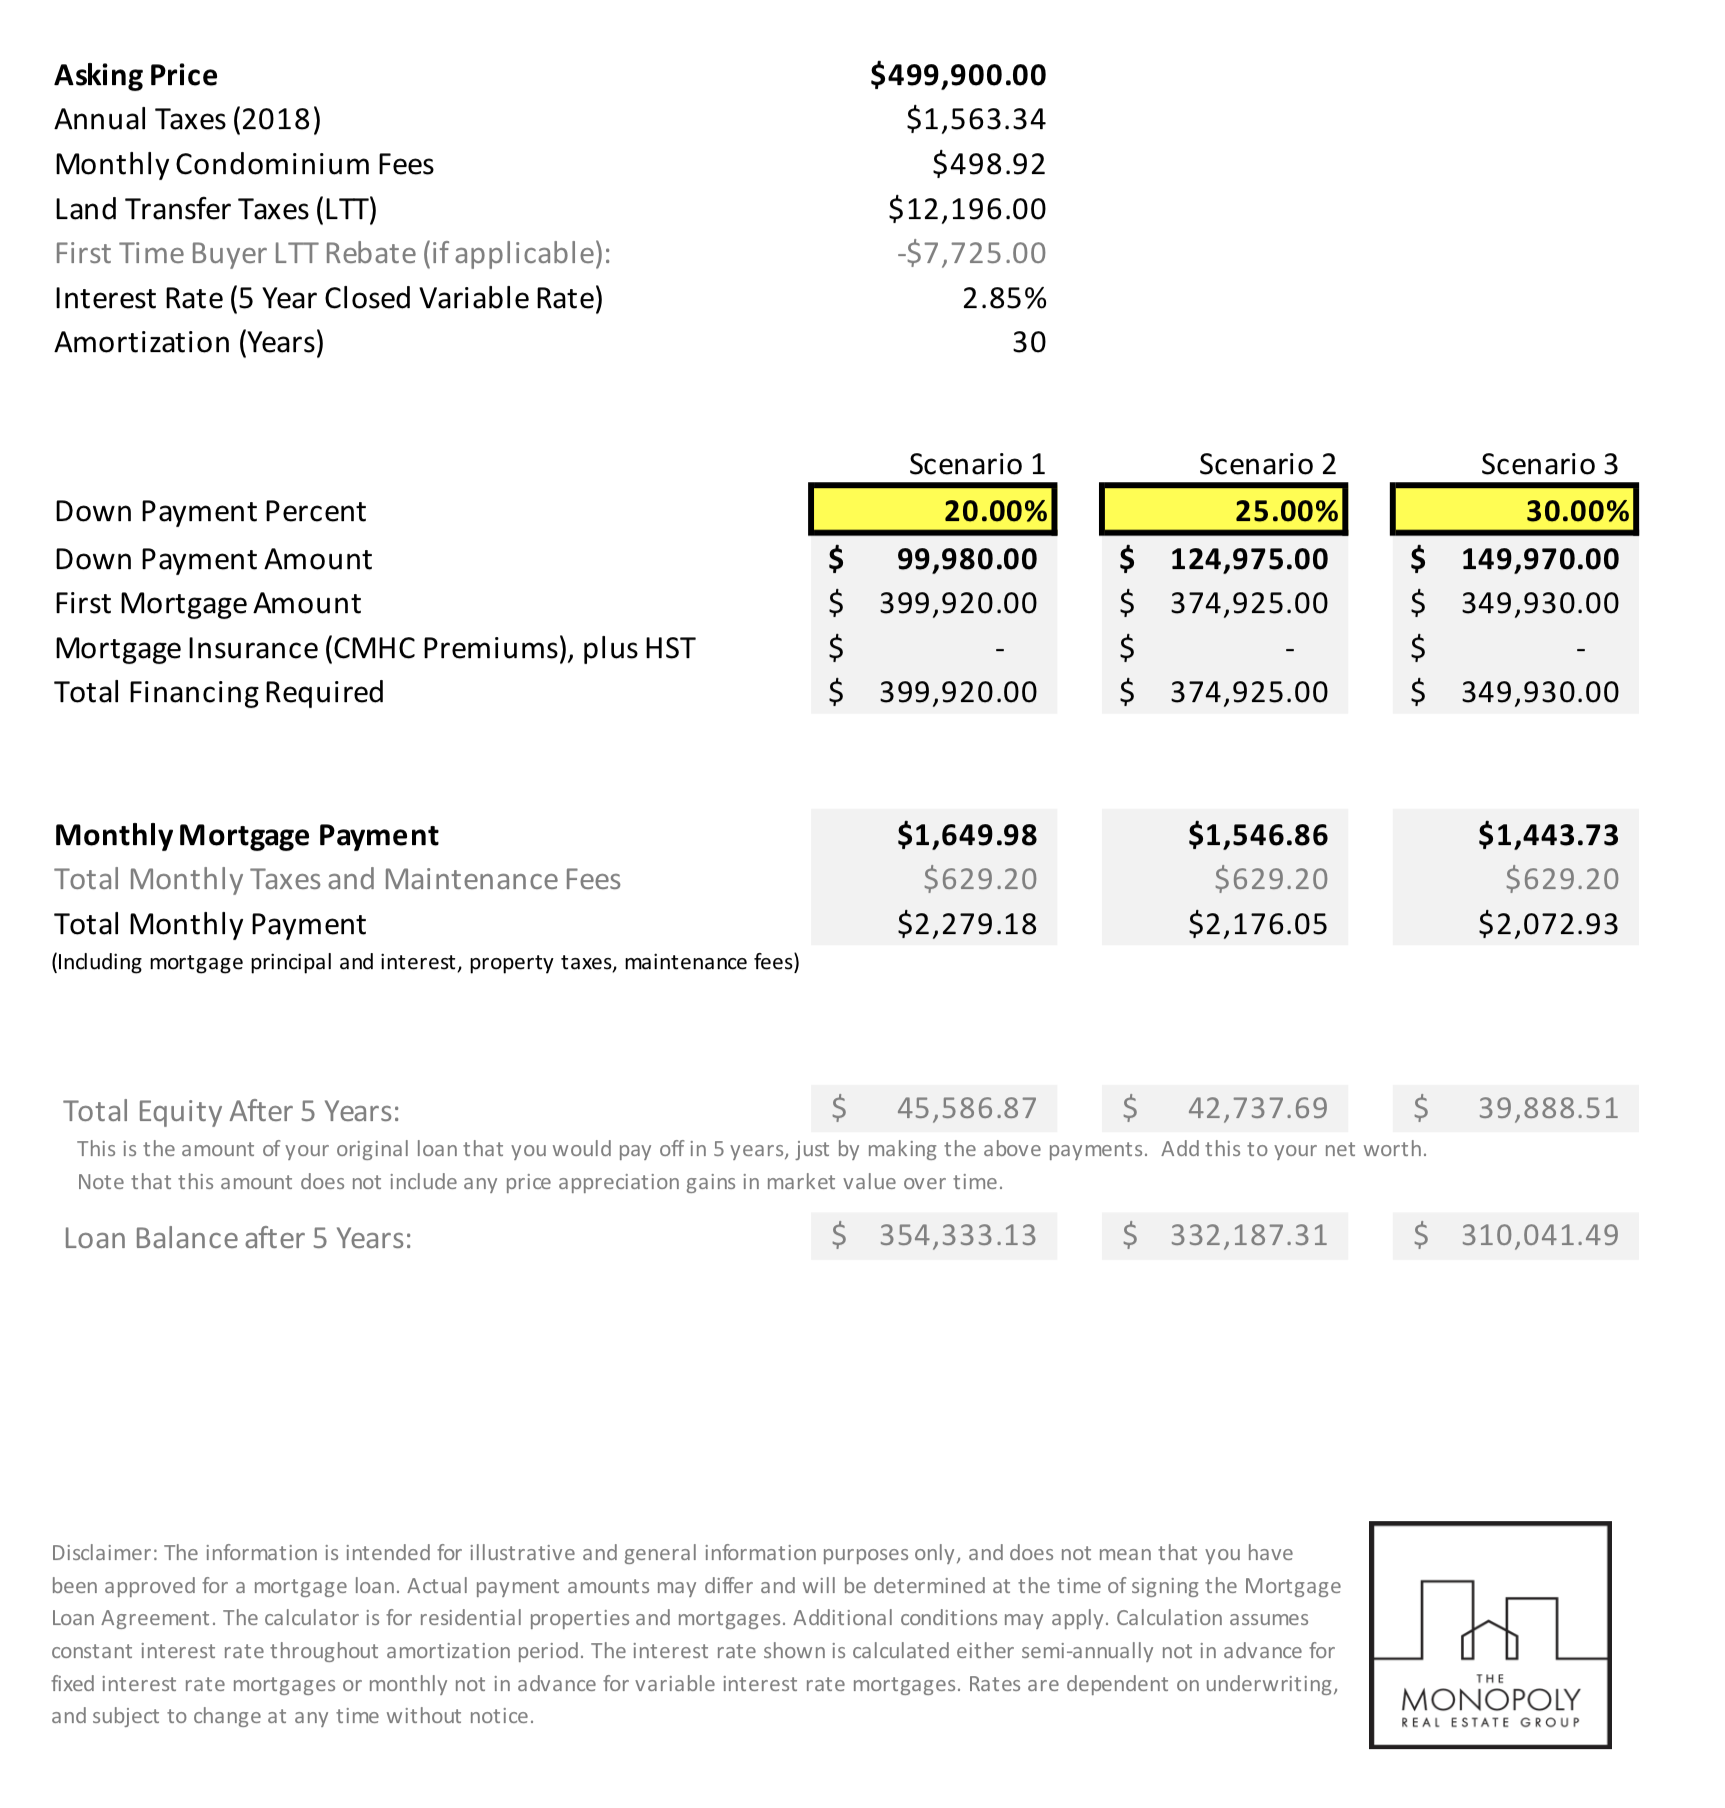 801 King Street West 907 - Mortgage Calculator Image.png